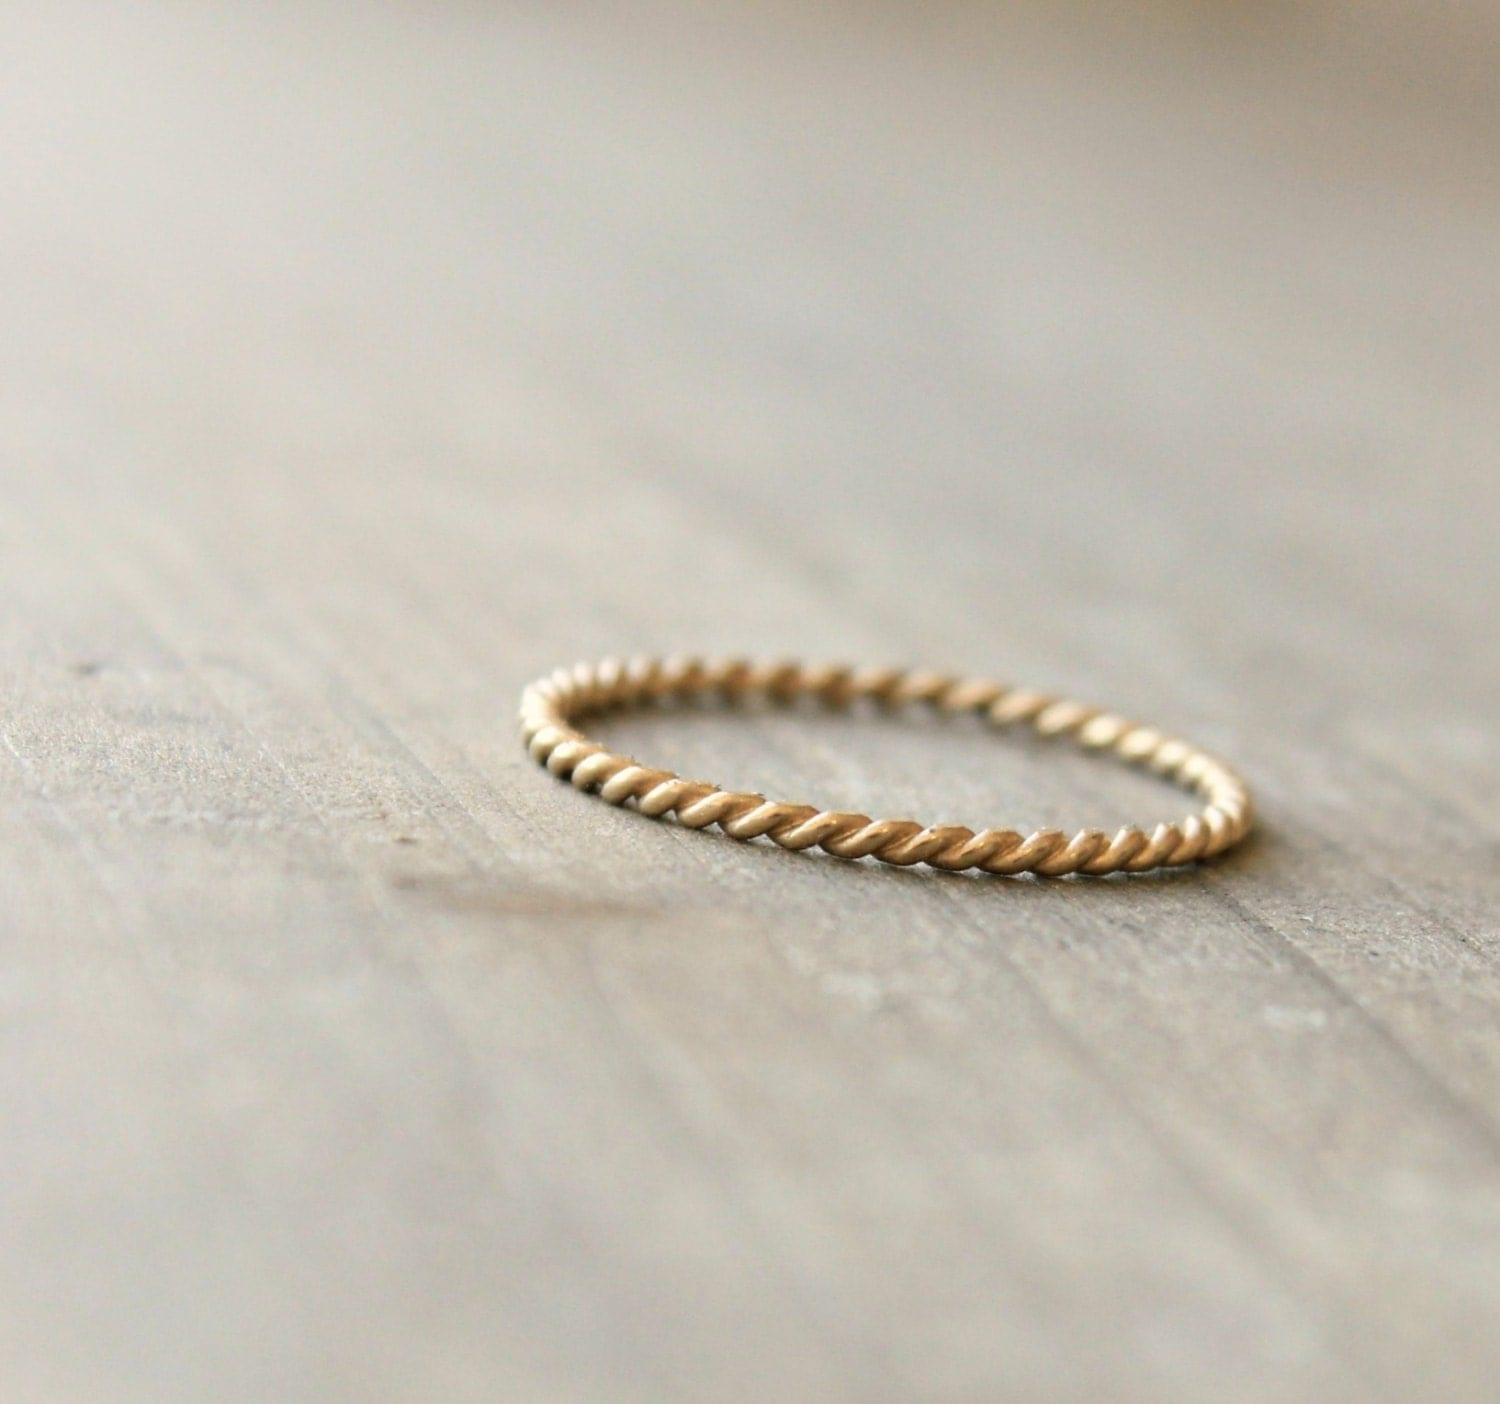 gold rope ring infinity twist wedding band Gold Wedding Band Anniversary Ring 14 k Gold Stacking Ring Delicate Thin Petite Ring Twined